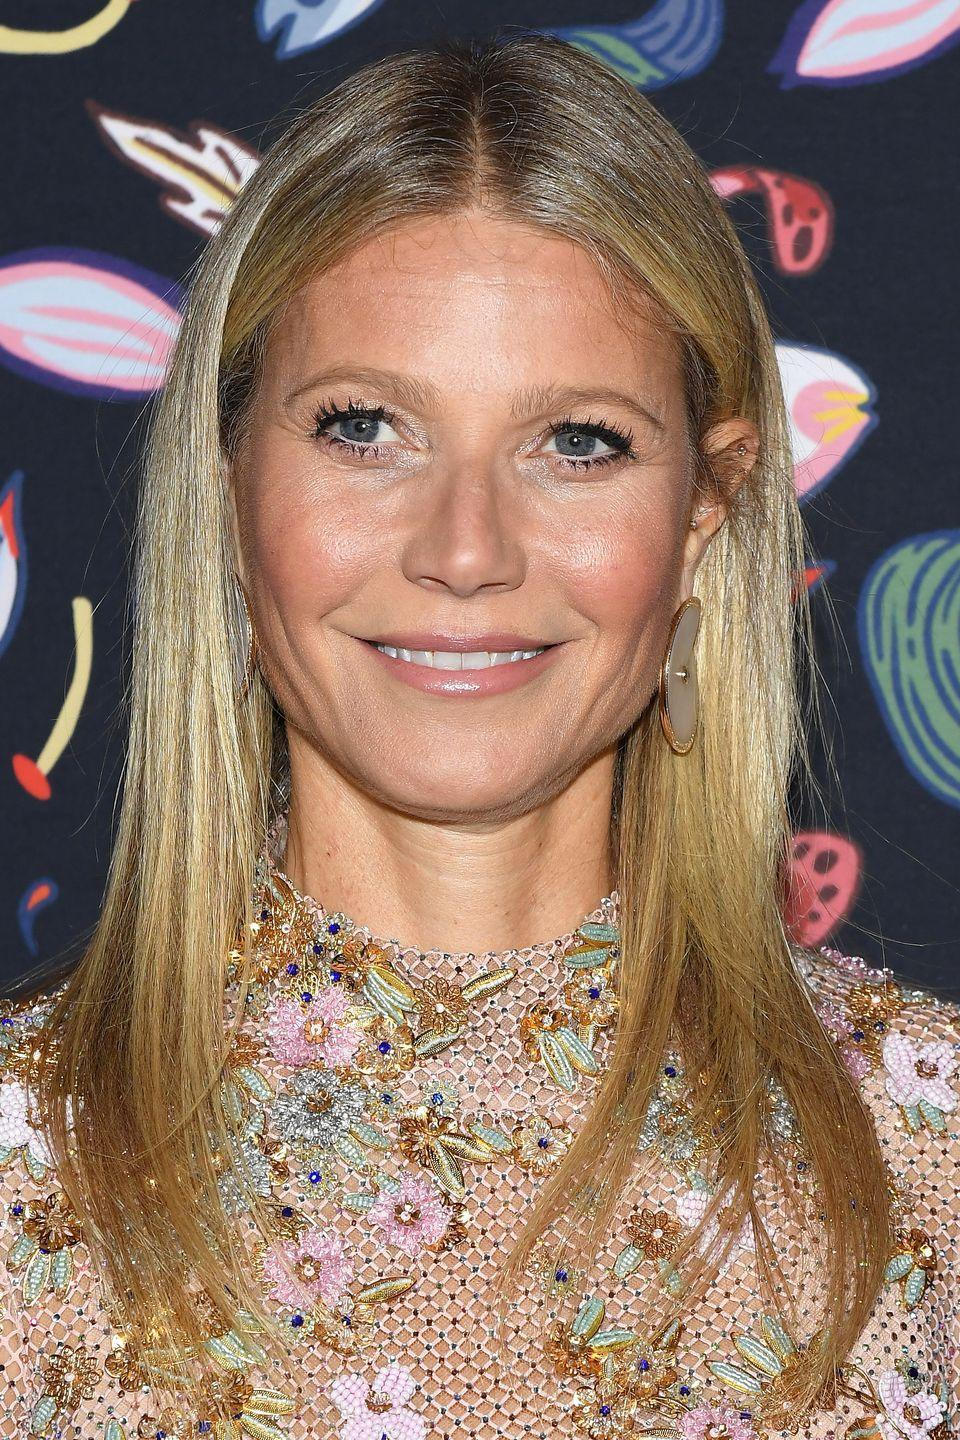 "<p>Gwyneth Paltrow might be well known for her 'clean beauty' empire <a href=""https://goop.com/uk"" rel=""nofollow noopener"" target=""_blank"" data-ylk=""slk:Goop,"" class=""link rapid-noclick-resp"">Goop,</a> but that doesn't mean she hasn't had Botox and laser treatments in the past.</p><p>""I've probably tried everything"", she said to <a href=""https://www.harpersbazaar.com/celebrity/latest/news/g2647/gwyneth-paltrow-interview-0513/?slide=1"" rel=""nofollow noopener"" target=""_blank"" data-ylk=""slk:Harper's Bazaar US"" class=""link rapid-noclick-resp"">Harper's Bazaar US</a> back in 2013. ""I would be scared to go under the knife, but you know, talk to me when I'm 50. I'll try anything. Except I won't do Botox again, because I looked crazy.""</p><p><a class=""link rapid-noclick-resp"" href=""https://www.harpersbazaar.com/uk/beauty/skincare/a28204375/laser-facial-treatments/"" rel=""nofollow noopener"" target=""_blank"" data-ylk=""slk:BEST LASER FACIALS"">BEST LASER FACIALS</a></p>"